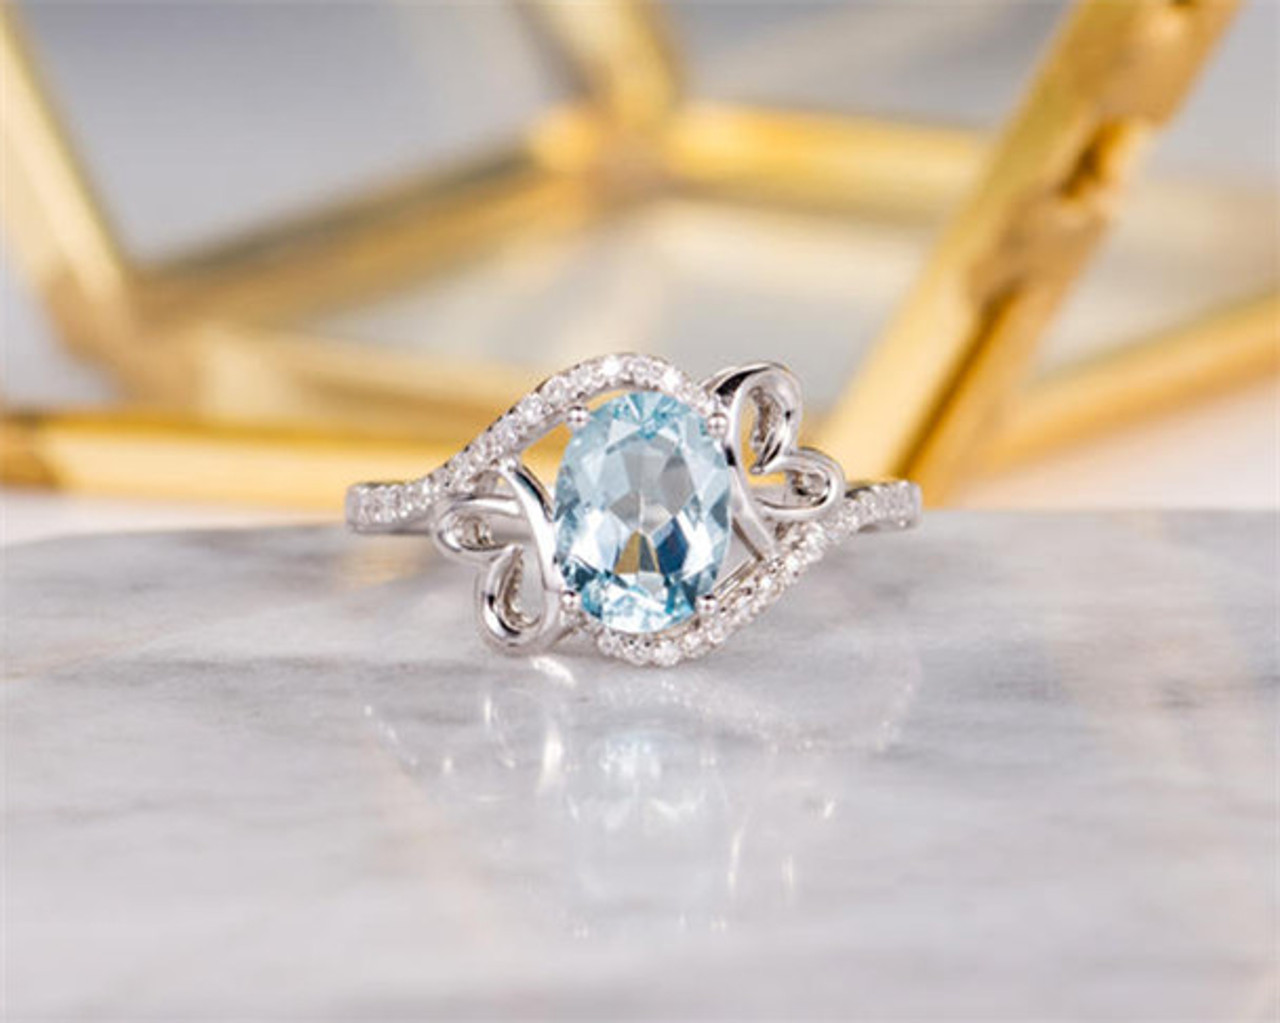 6b3a7a447c0f8 White Gold Aquamarine Engagement Ring Bridal Ring Butterfly Diamond Curved  Shaped March Birthstone Women Anniversary Antique Wedding